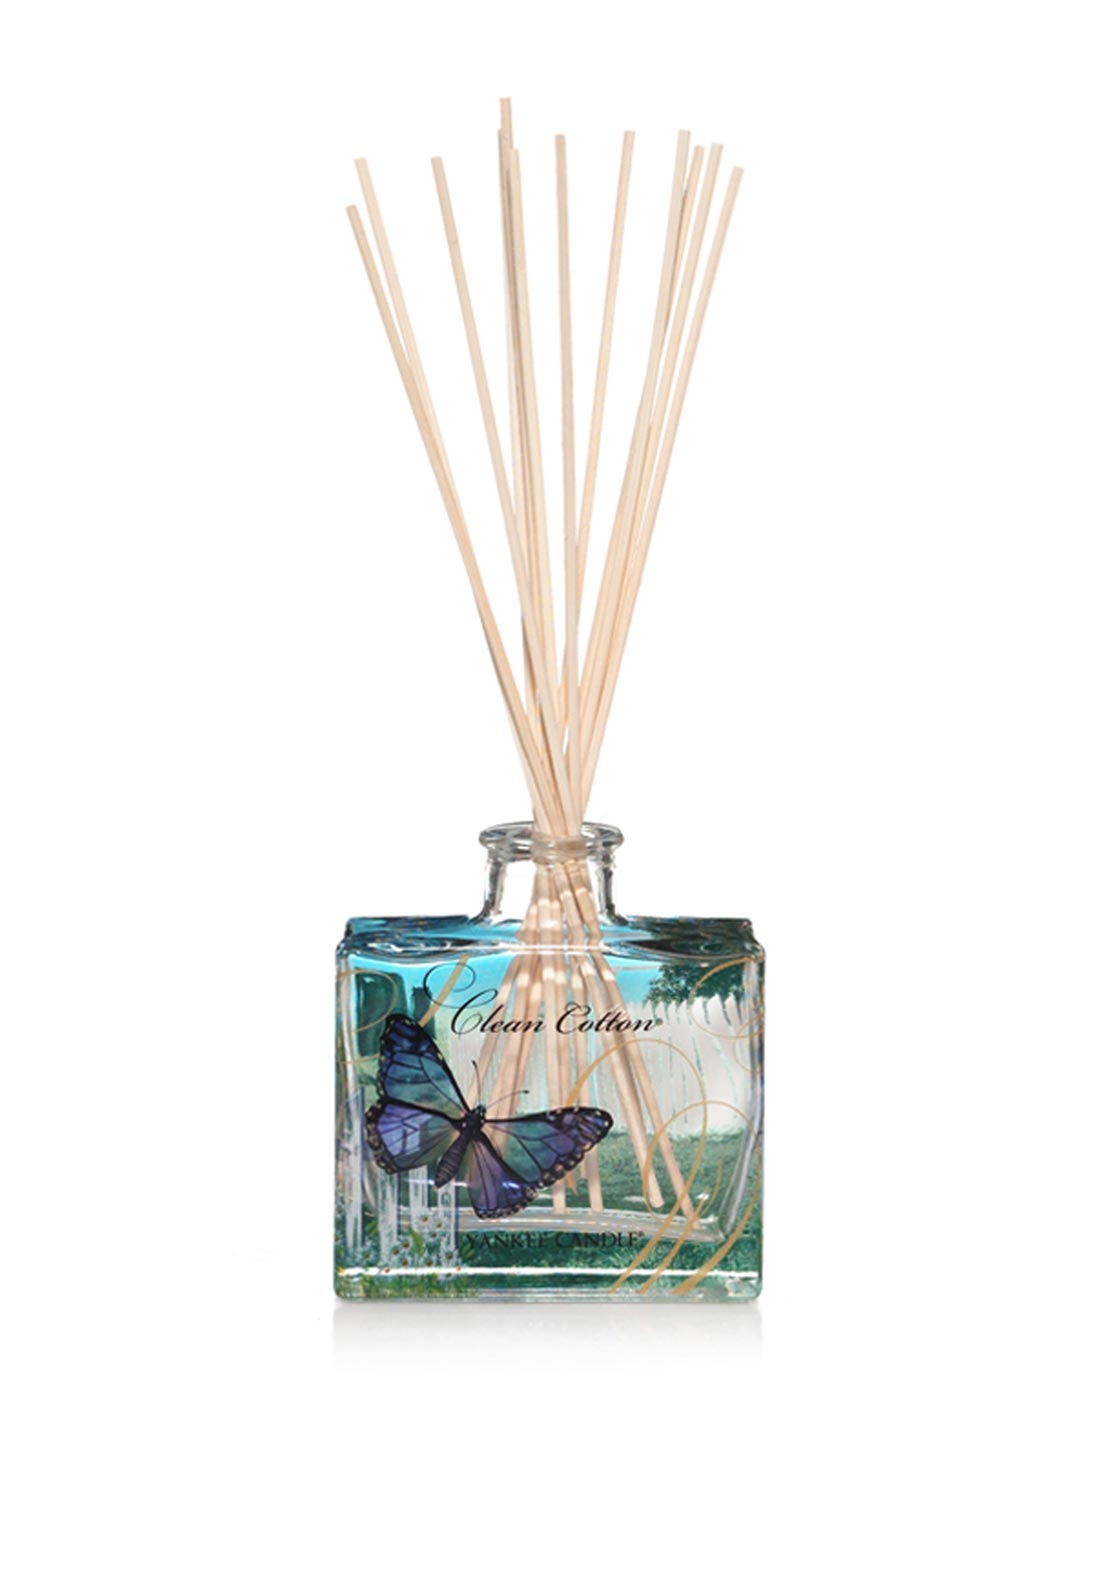 Yankee Candle Reed Fragrance Diffuser, Clean Cotton